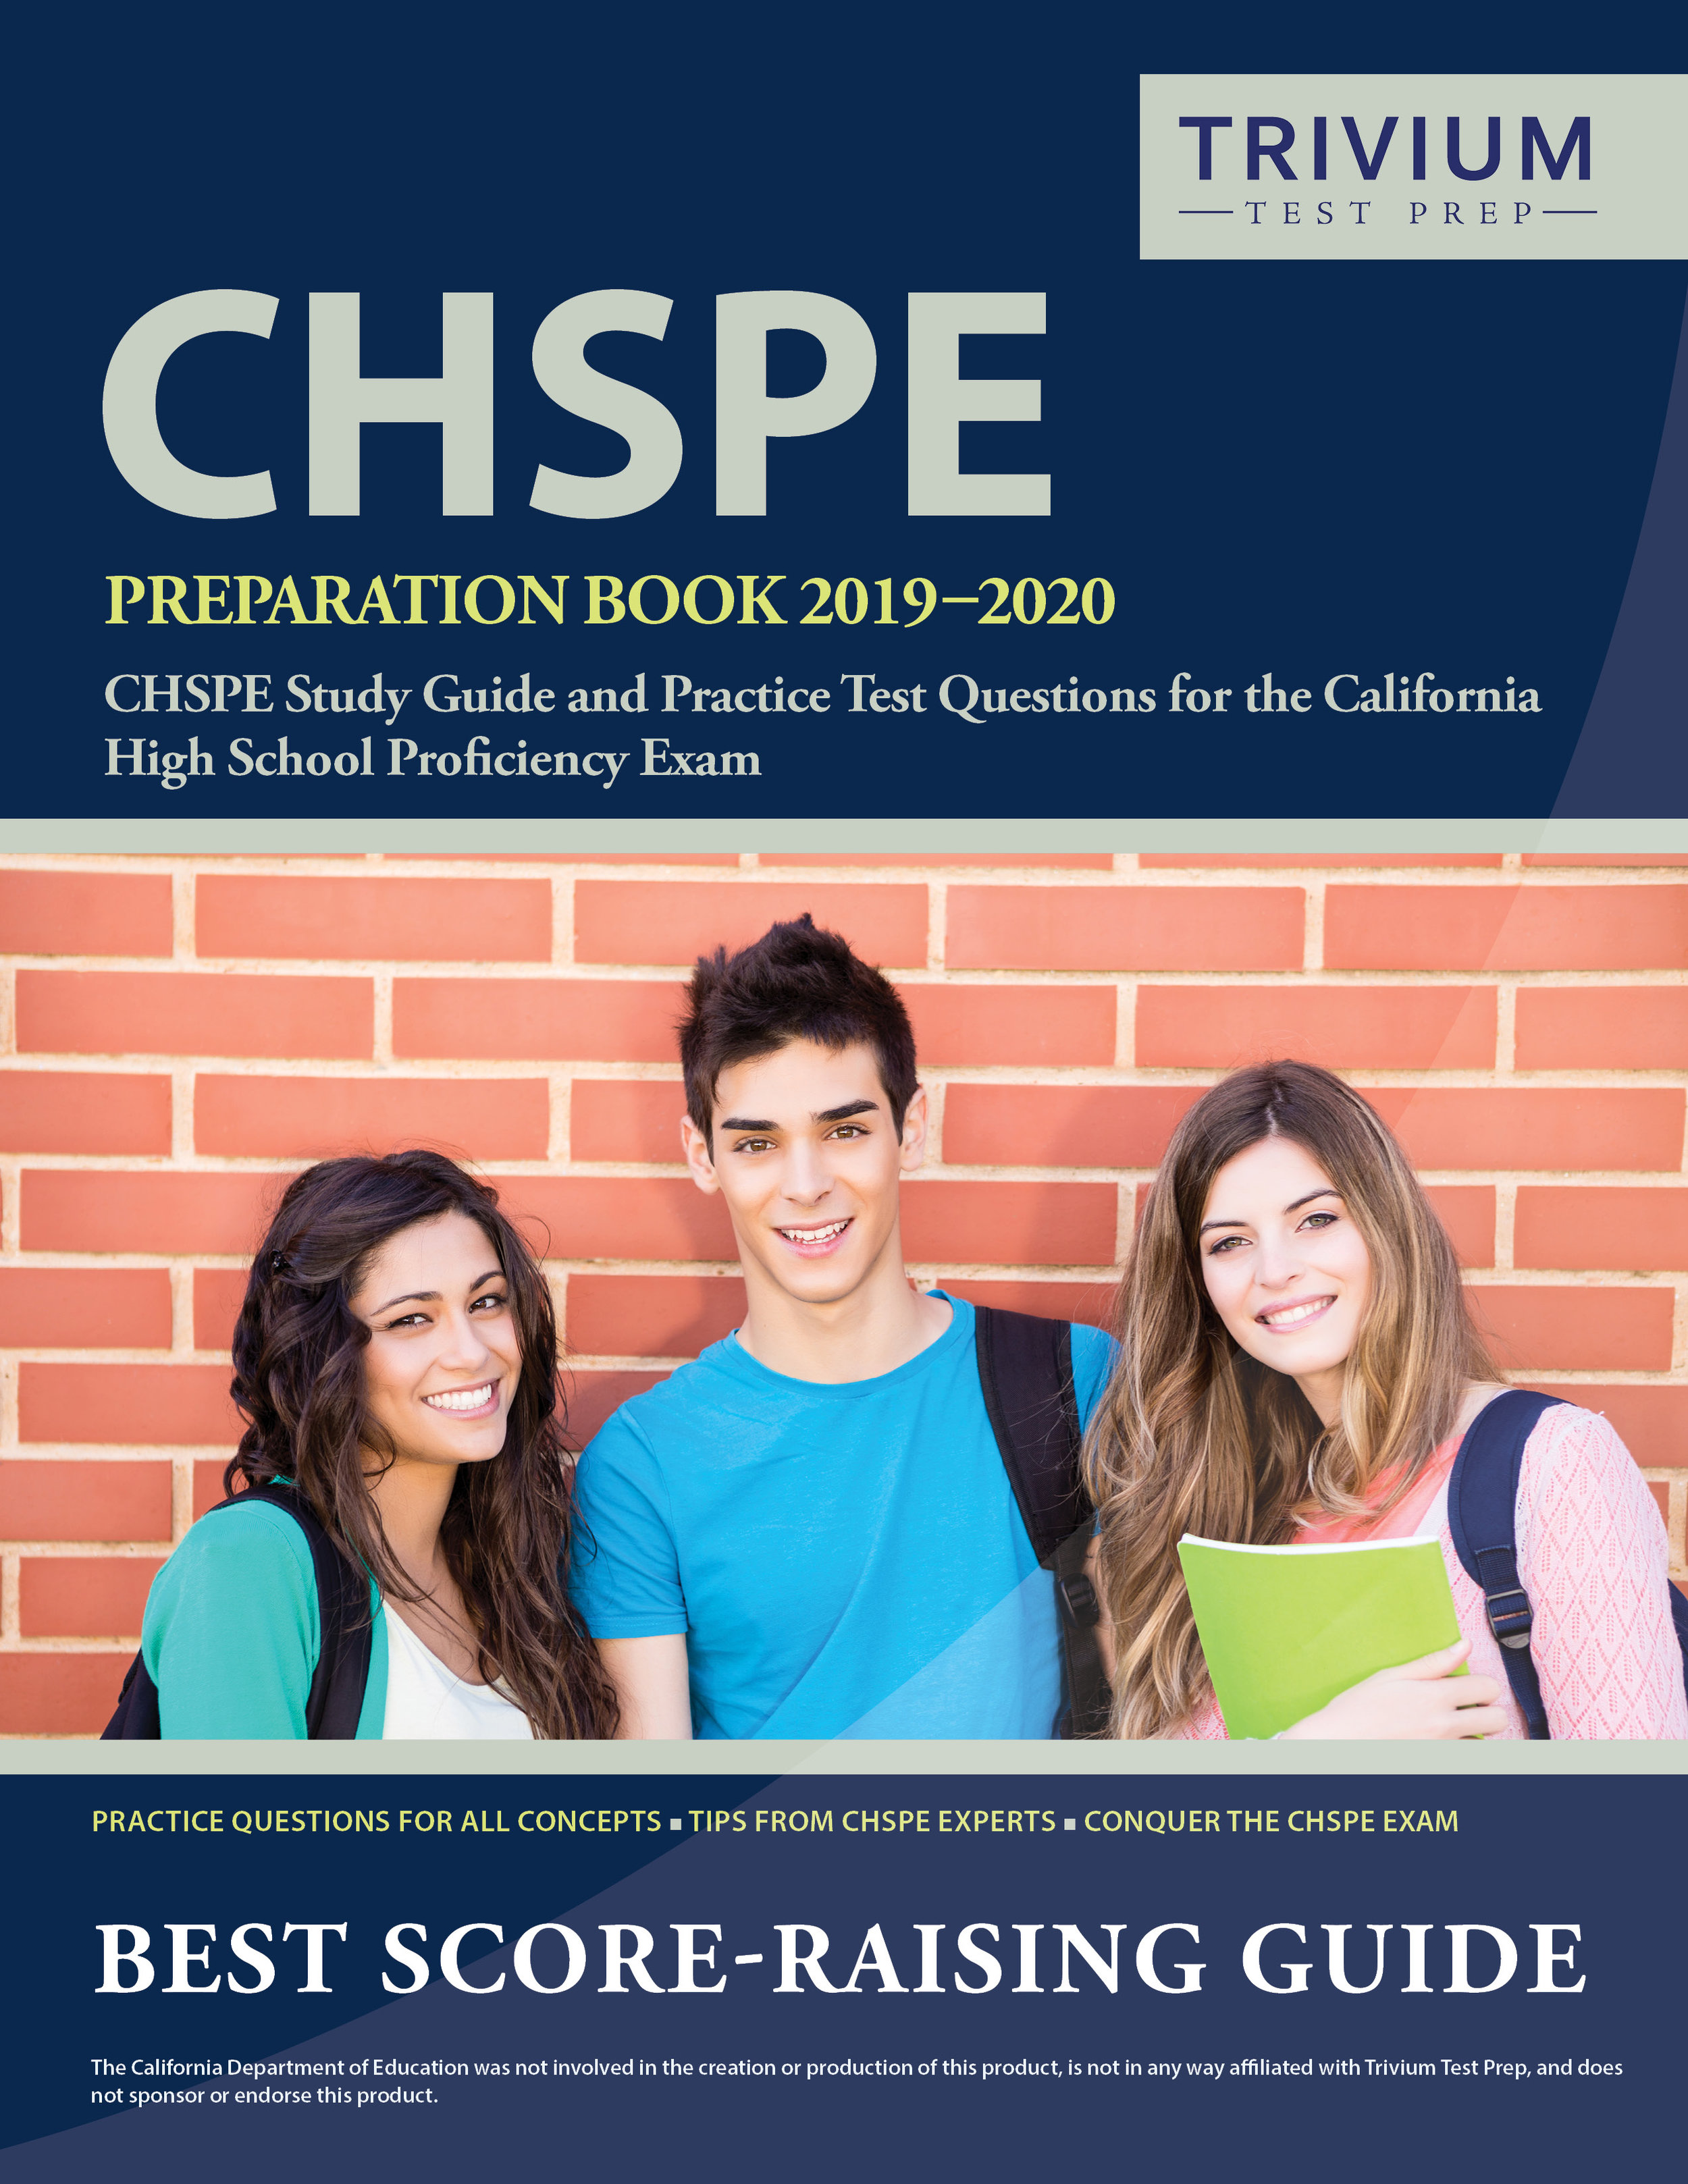 CHSPE_2019_cover_website.jpg